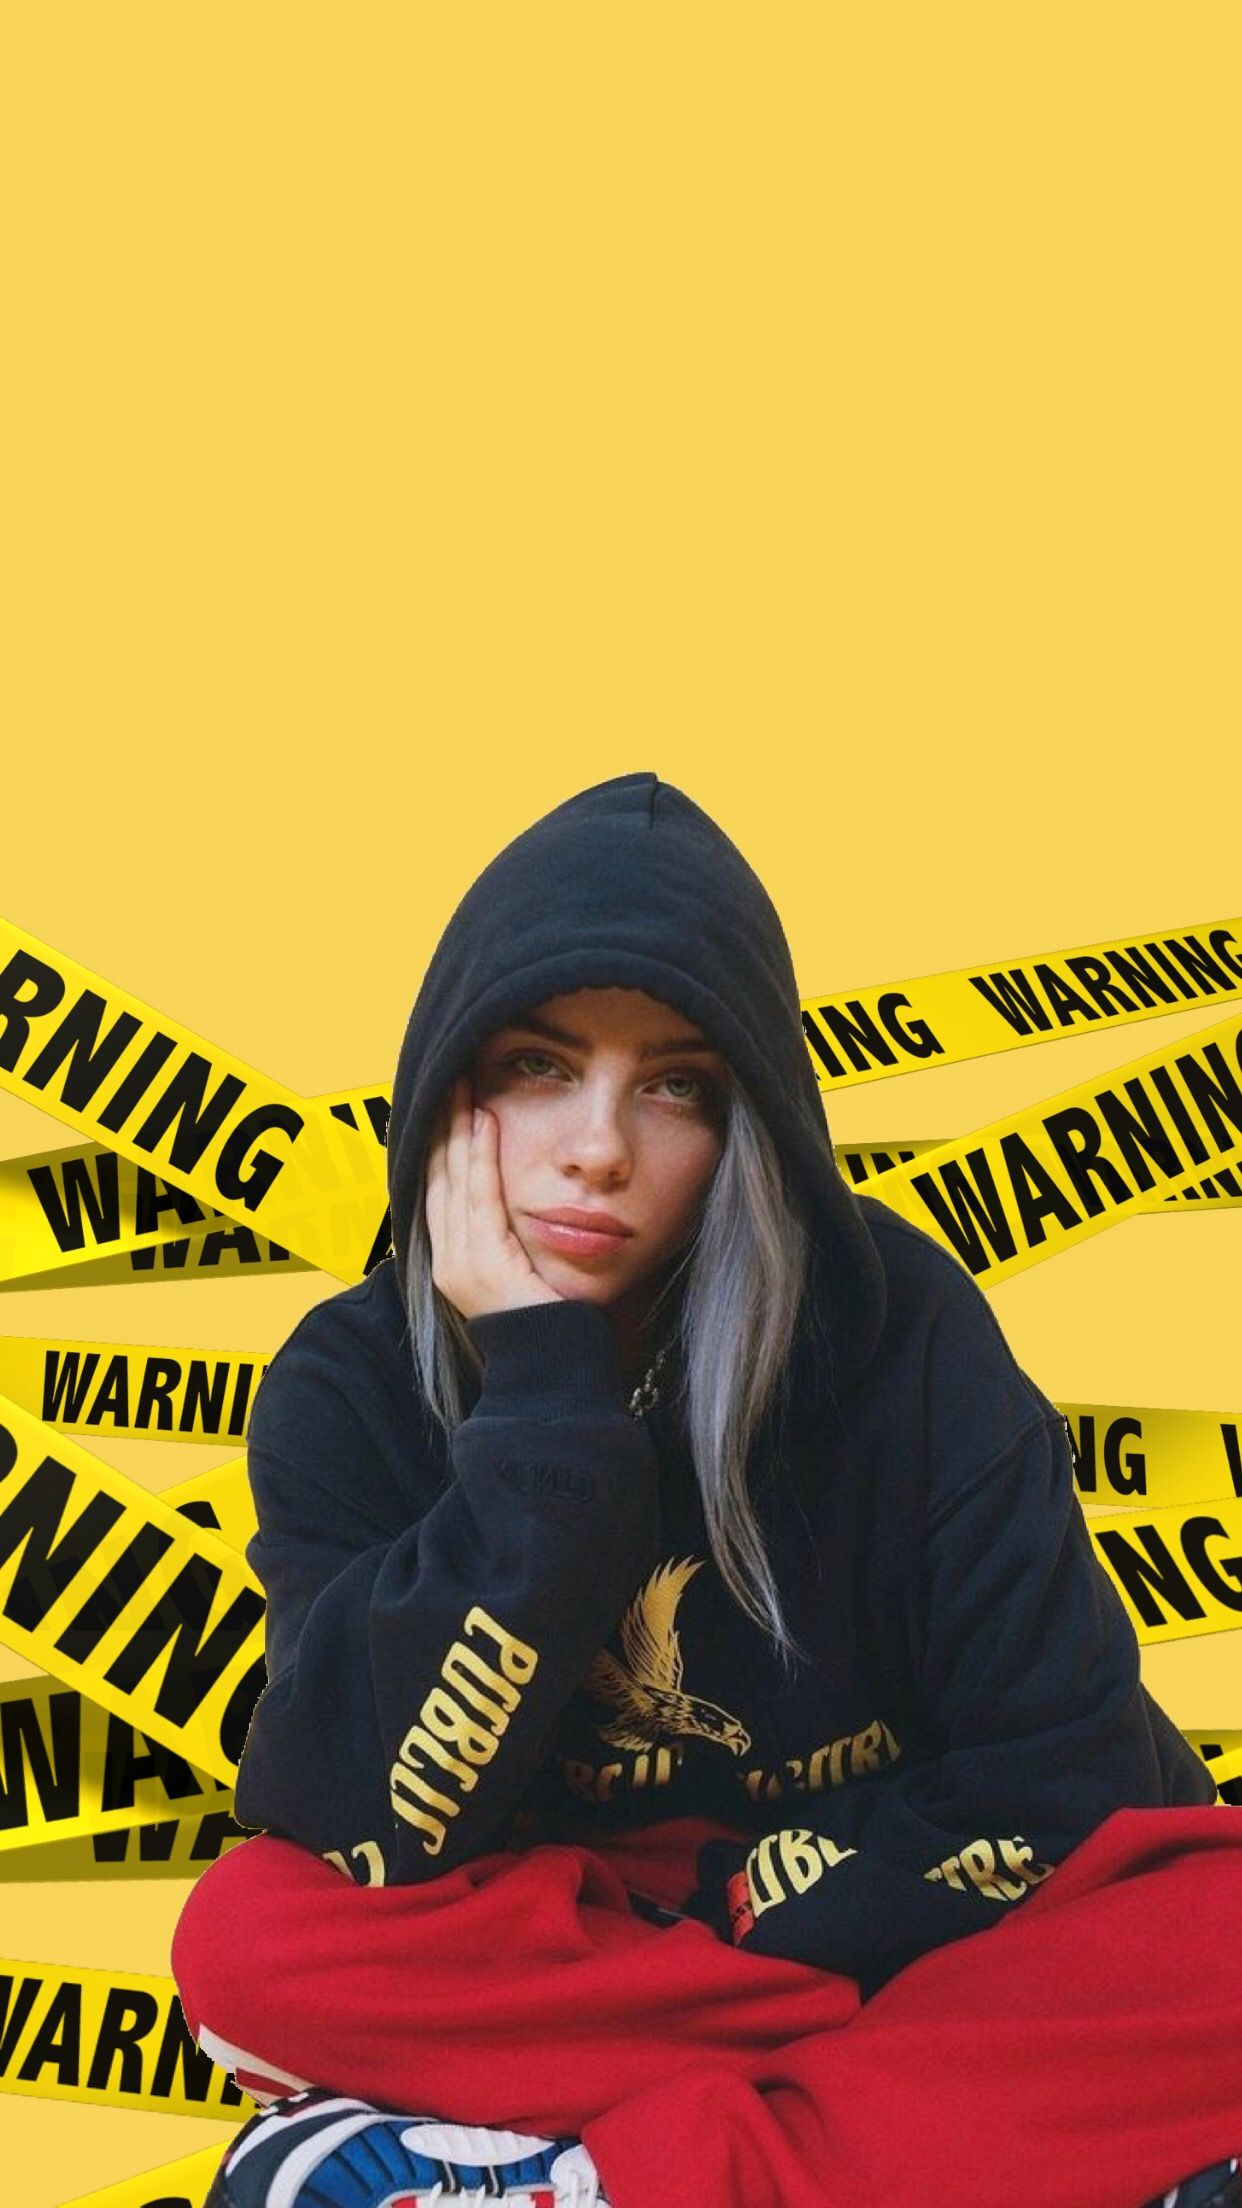 Billie Eilish Wallpaper/ Lock screen